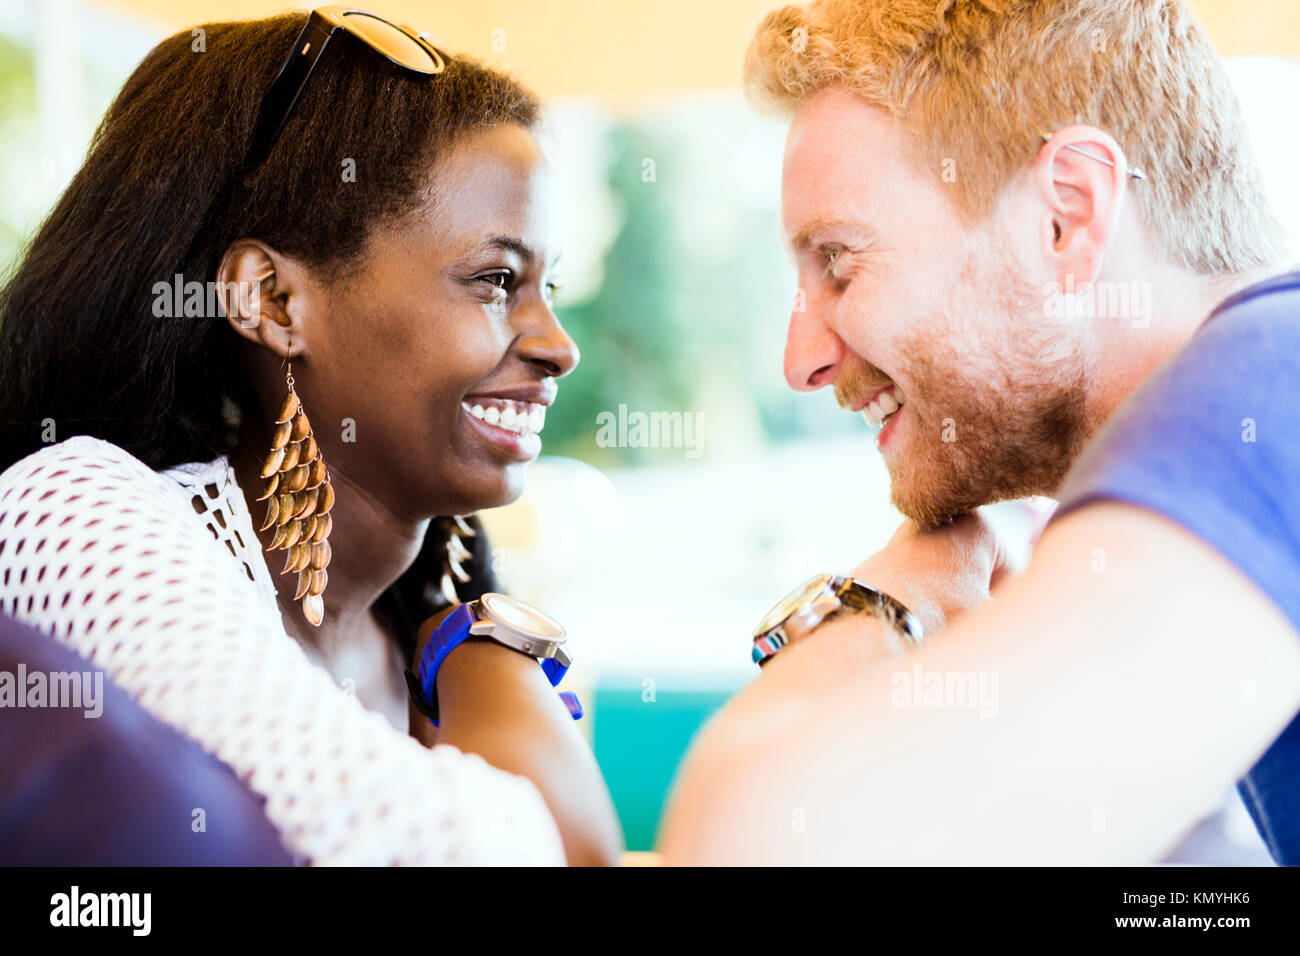 Romantic couple smiling while looking into each others eyes - Stock Image